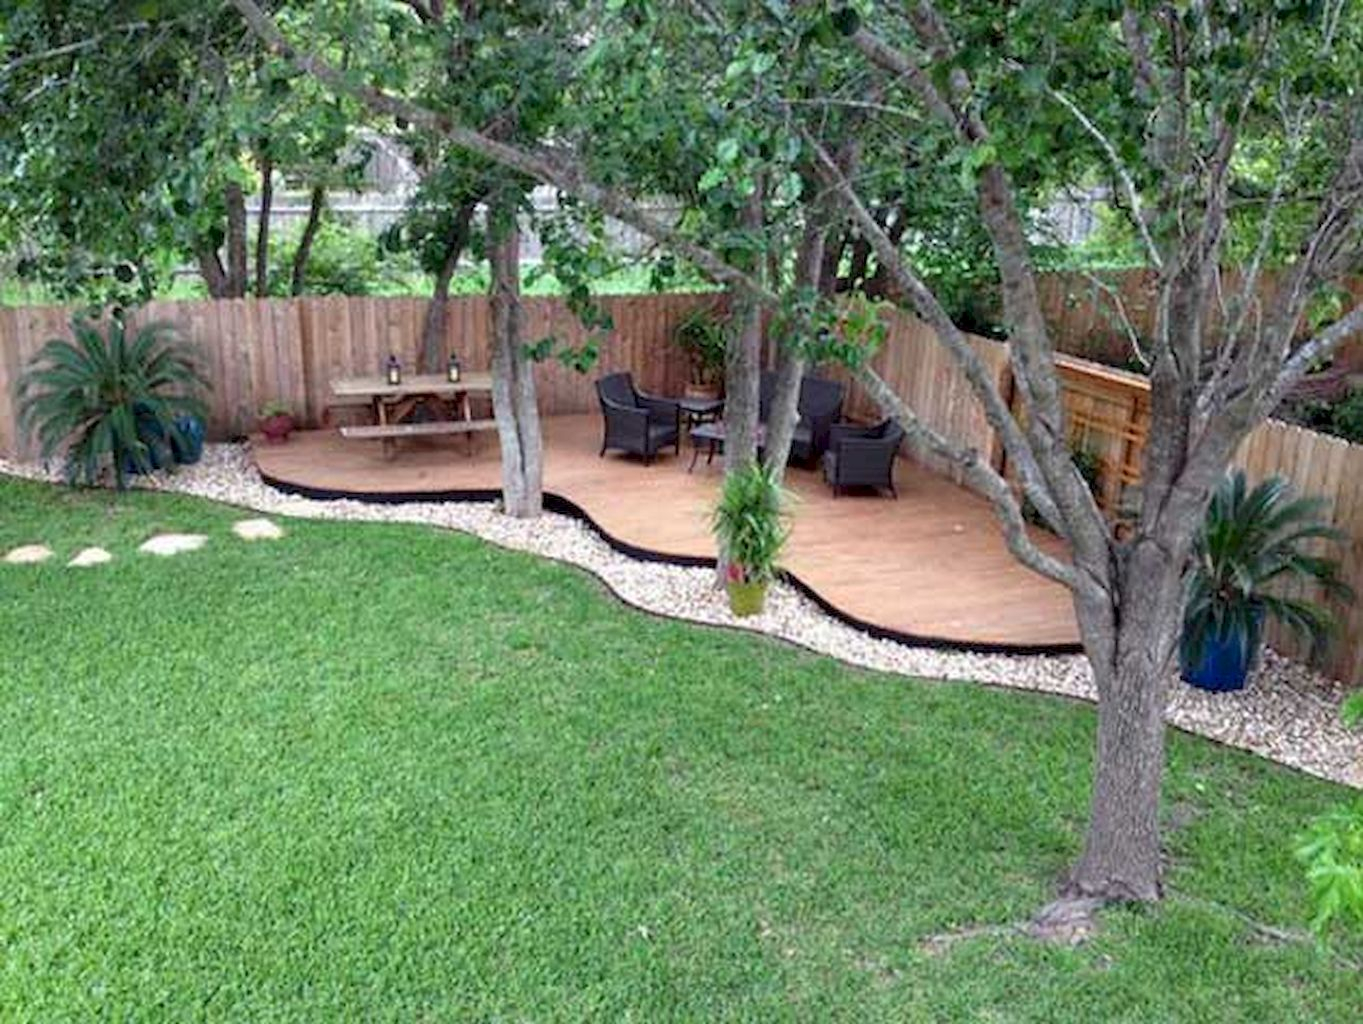 60 Fresh Backyard Landscaping Design Ideas On A Budget Coachdecor pertaining to 14 Clever Ways How to Build Landscape Design Ideas Backyard